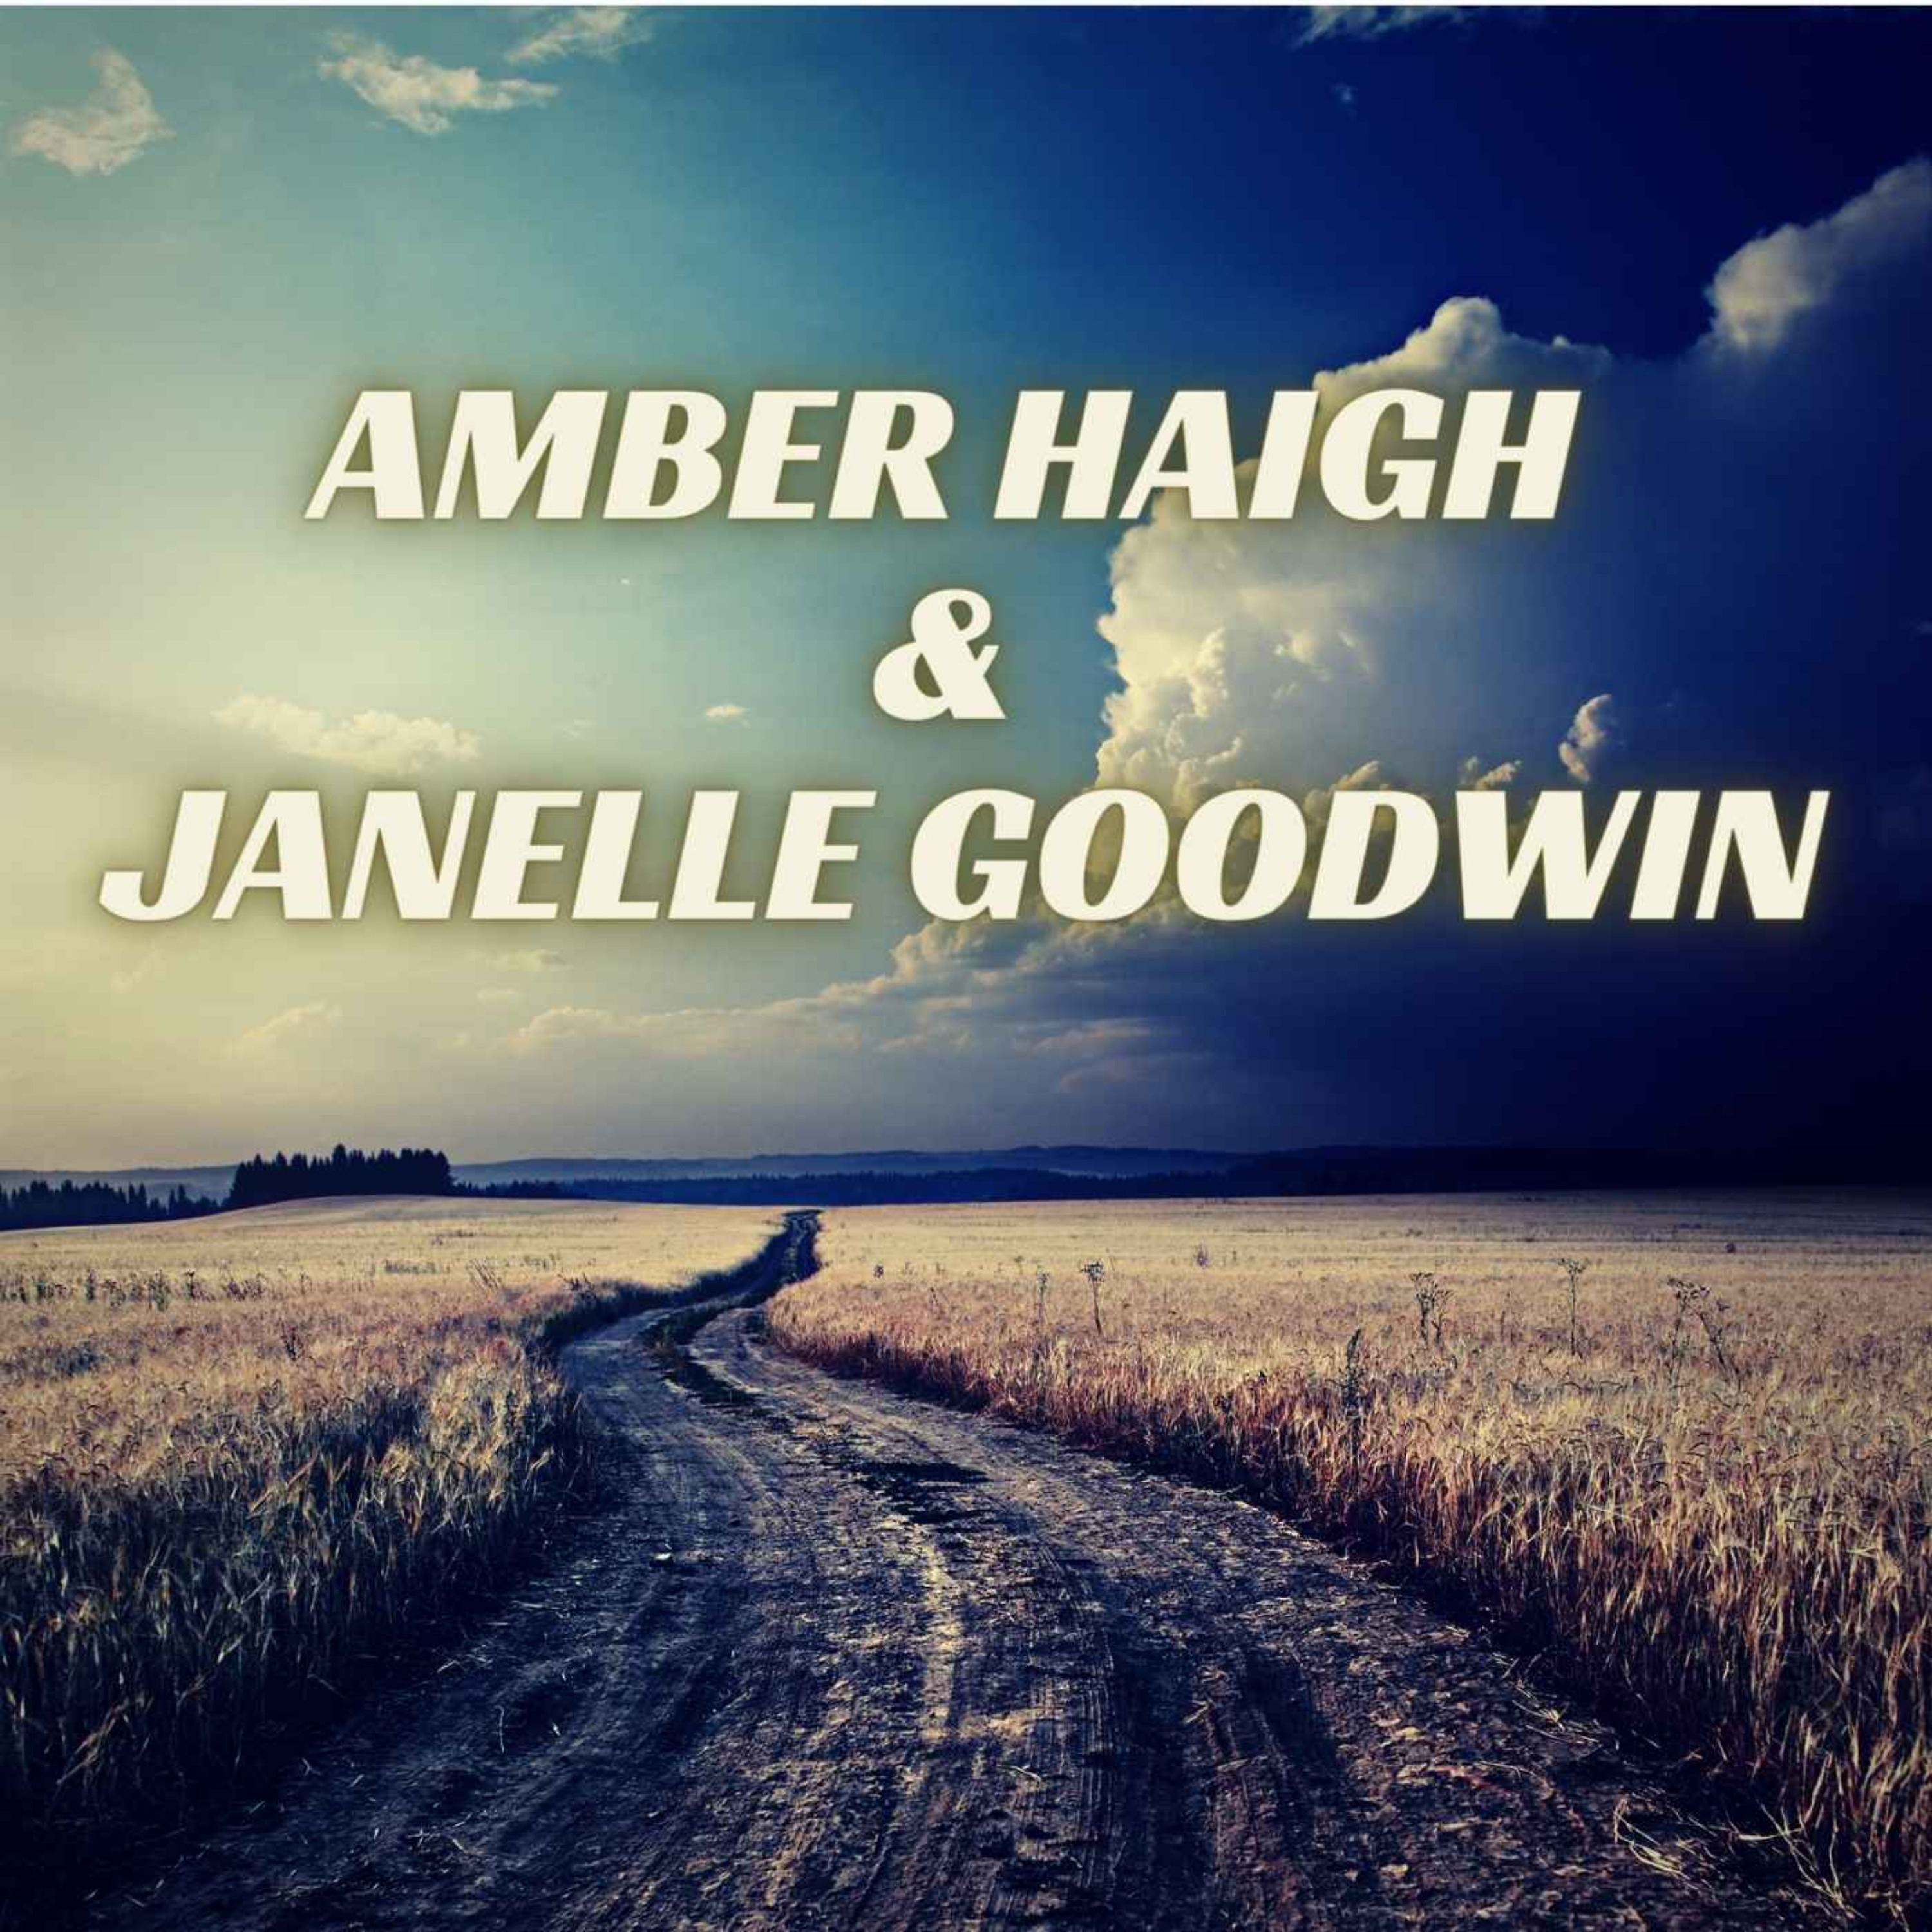 Amber Haigh and Janelle Goodwin